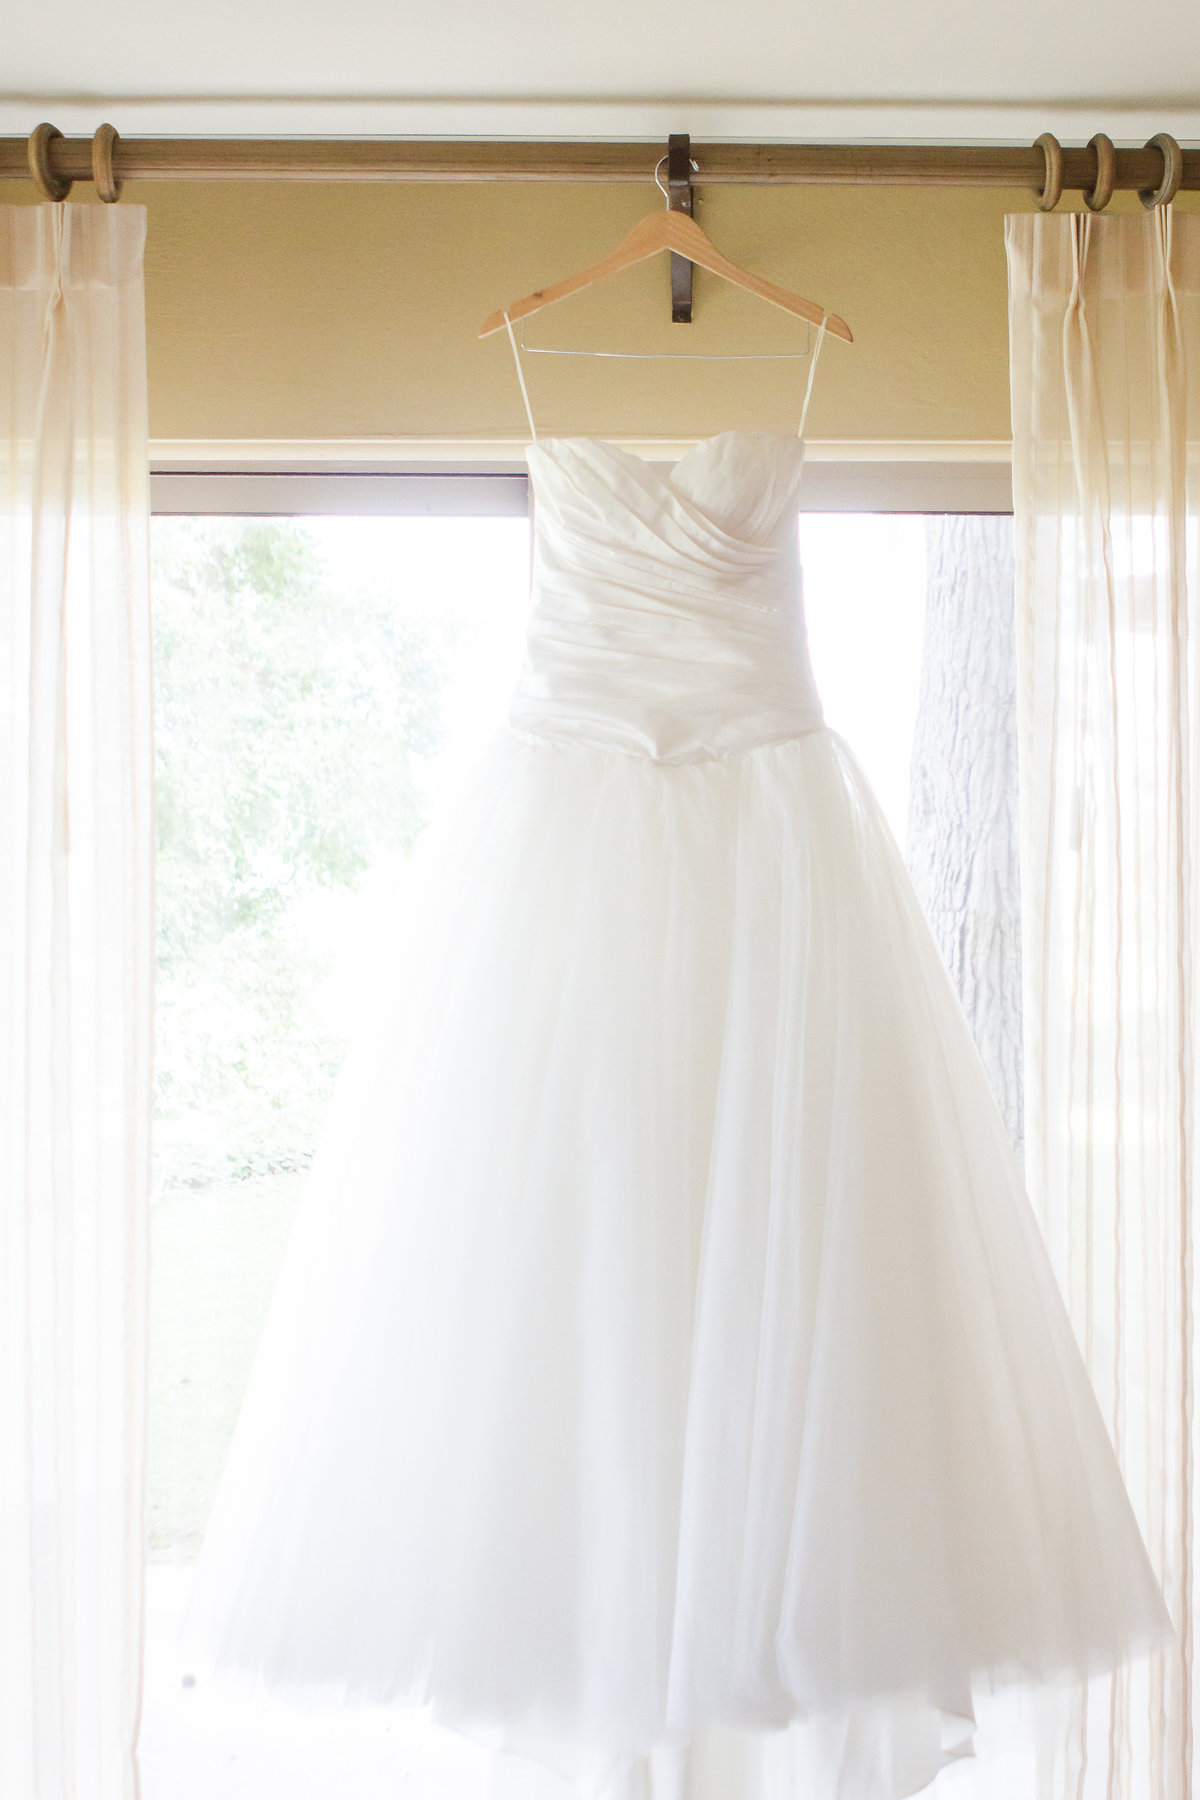 01-Temecula Wedding Pictures-Temecula Creek Inn_